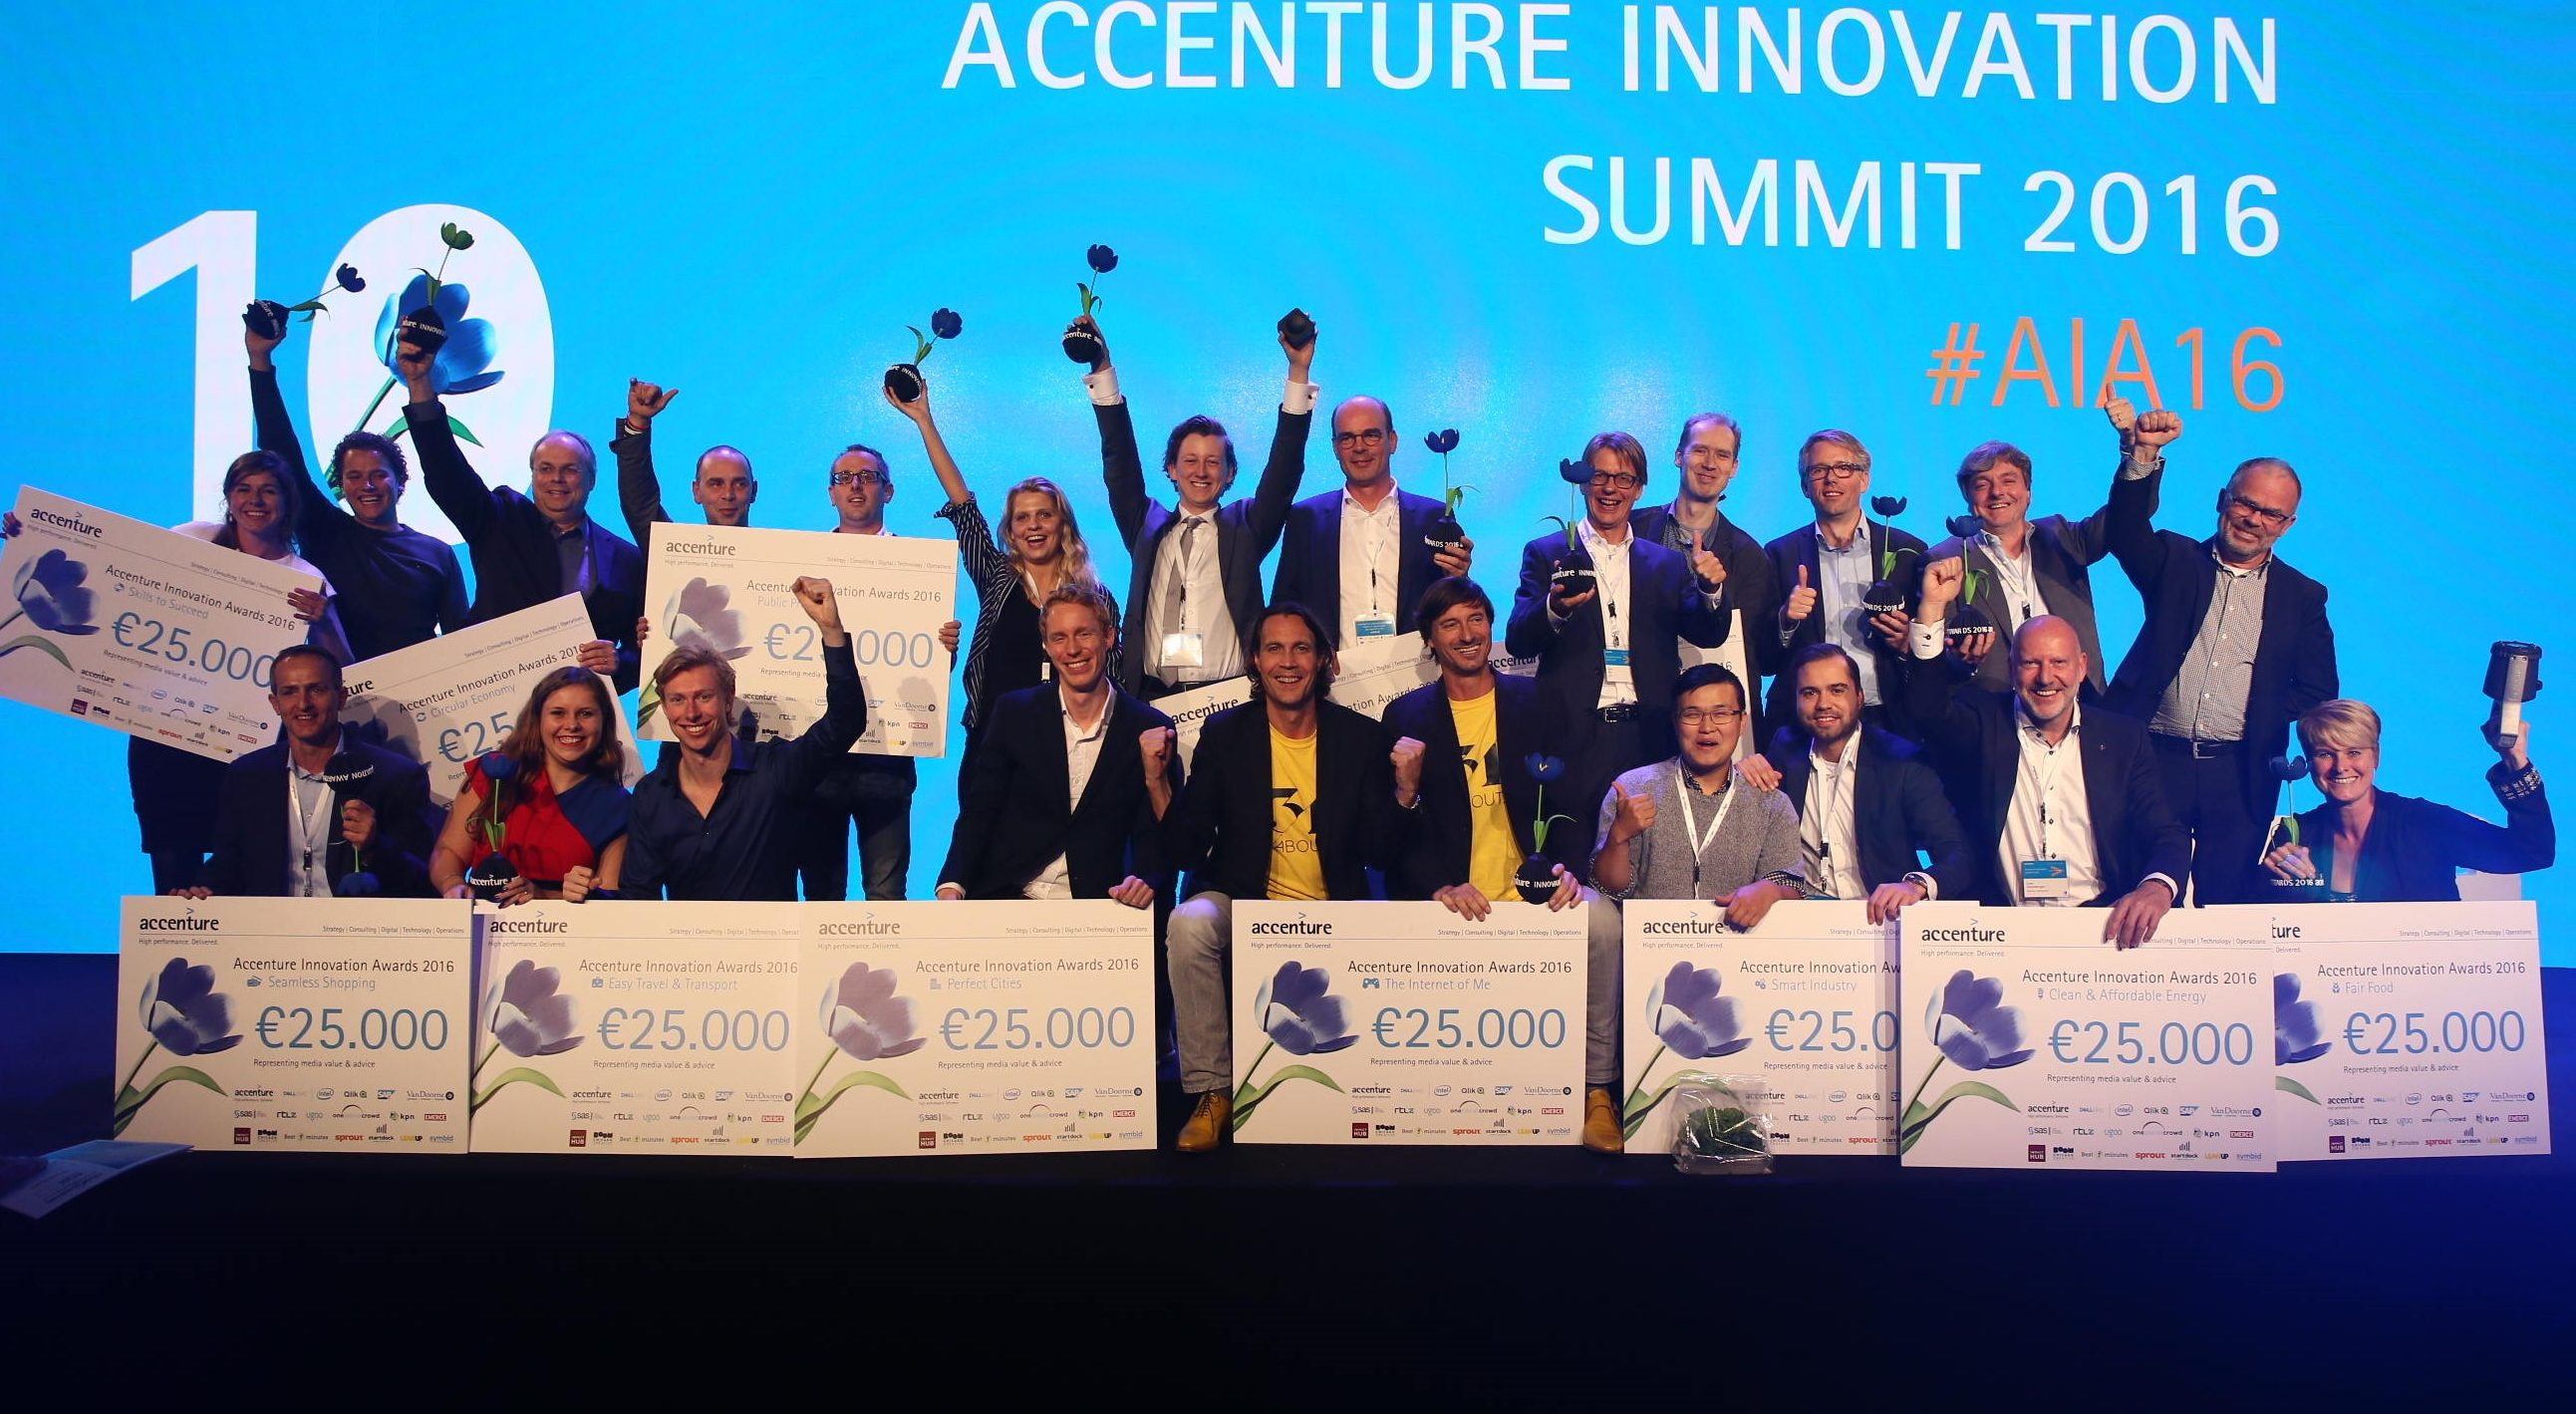 Dutch startup news update: Noviosense, Accenture Innovation Awards